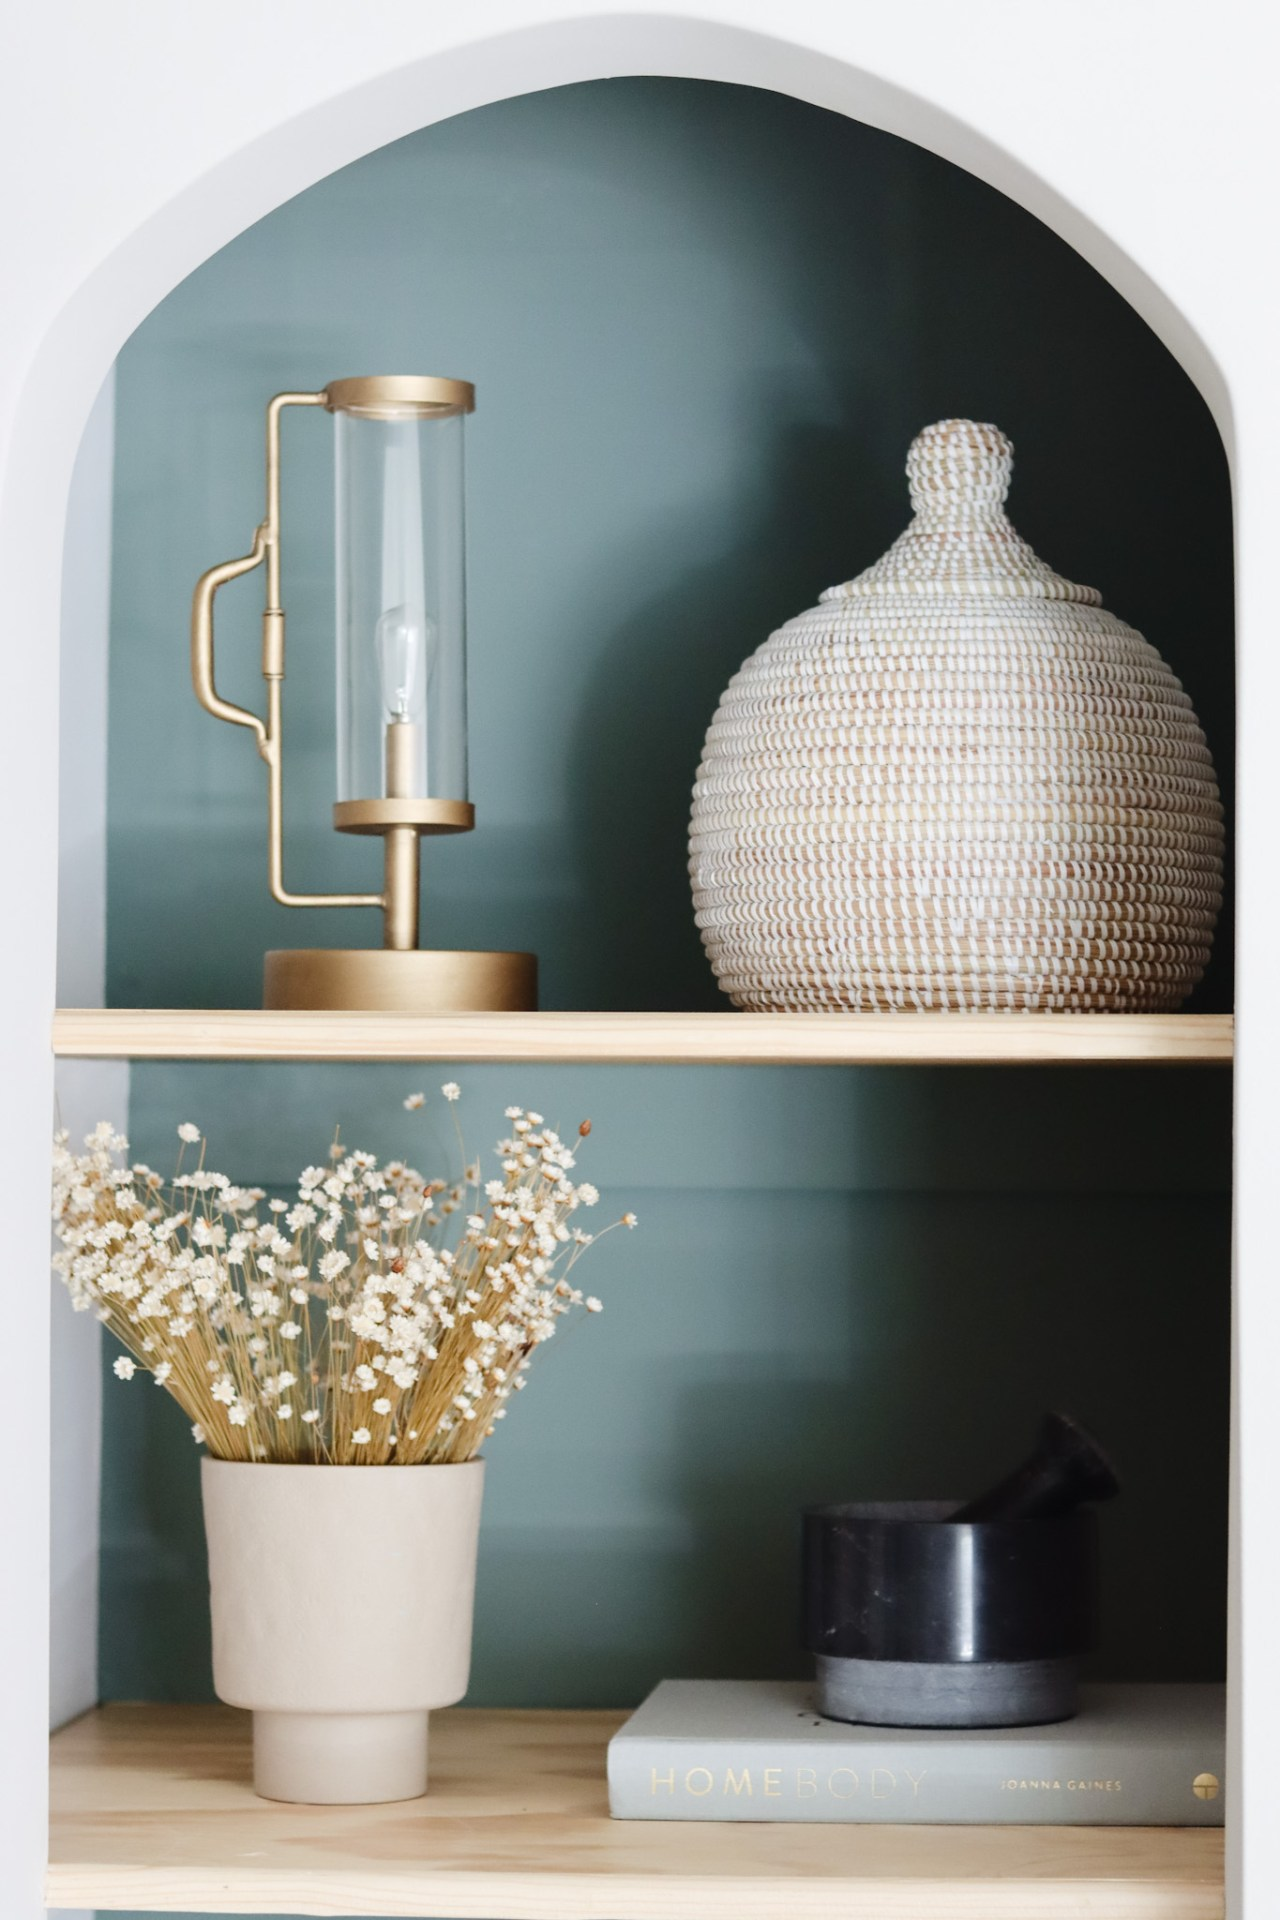 interior decorating rushmehome's featured, green shelf